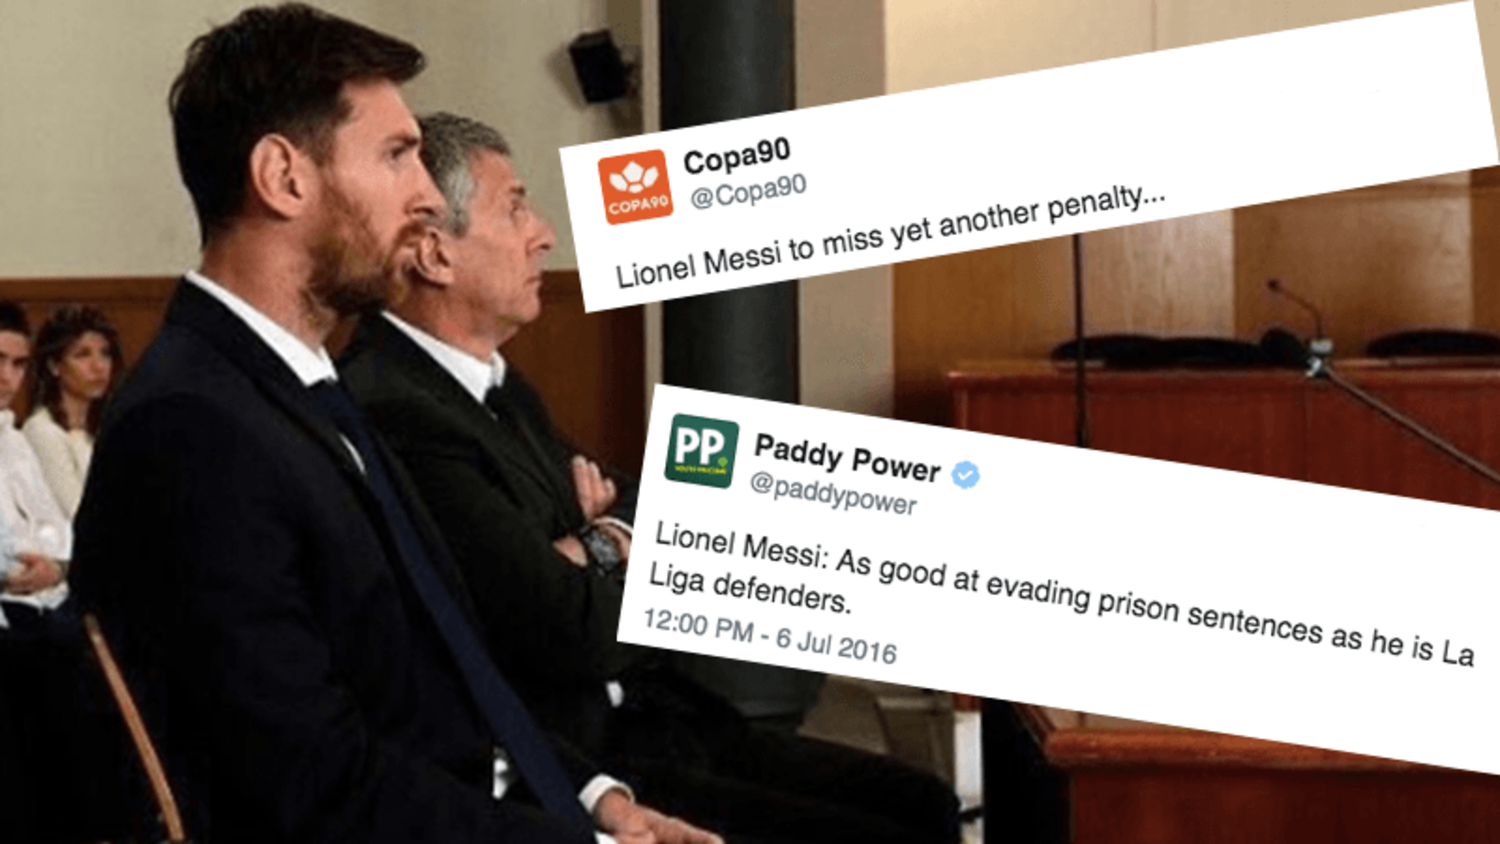 How the internet reacted to Lionel Messi's '21 Month Prison Sentence'